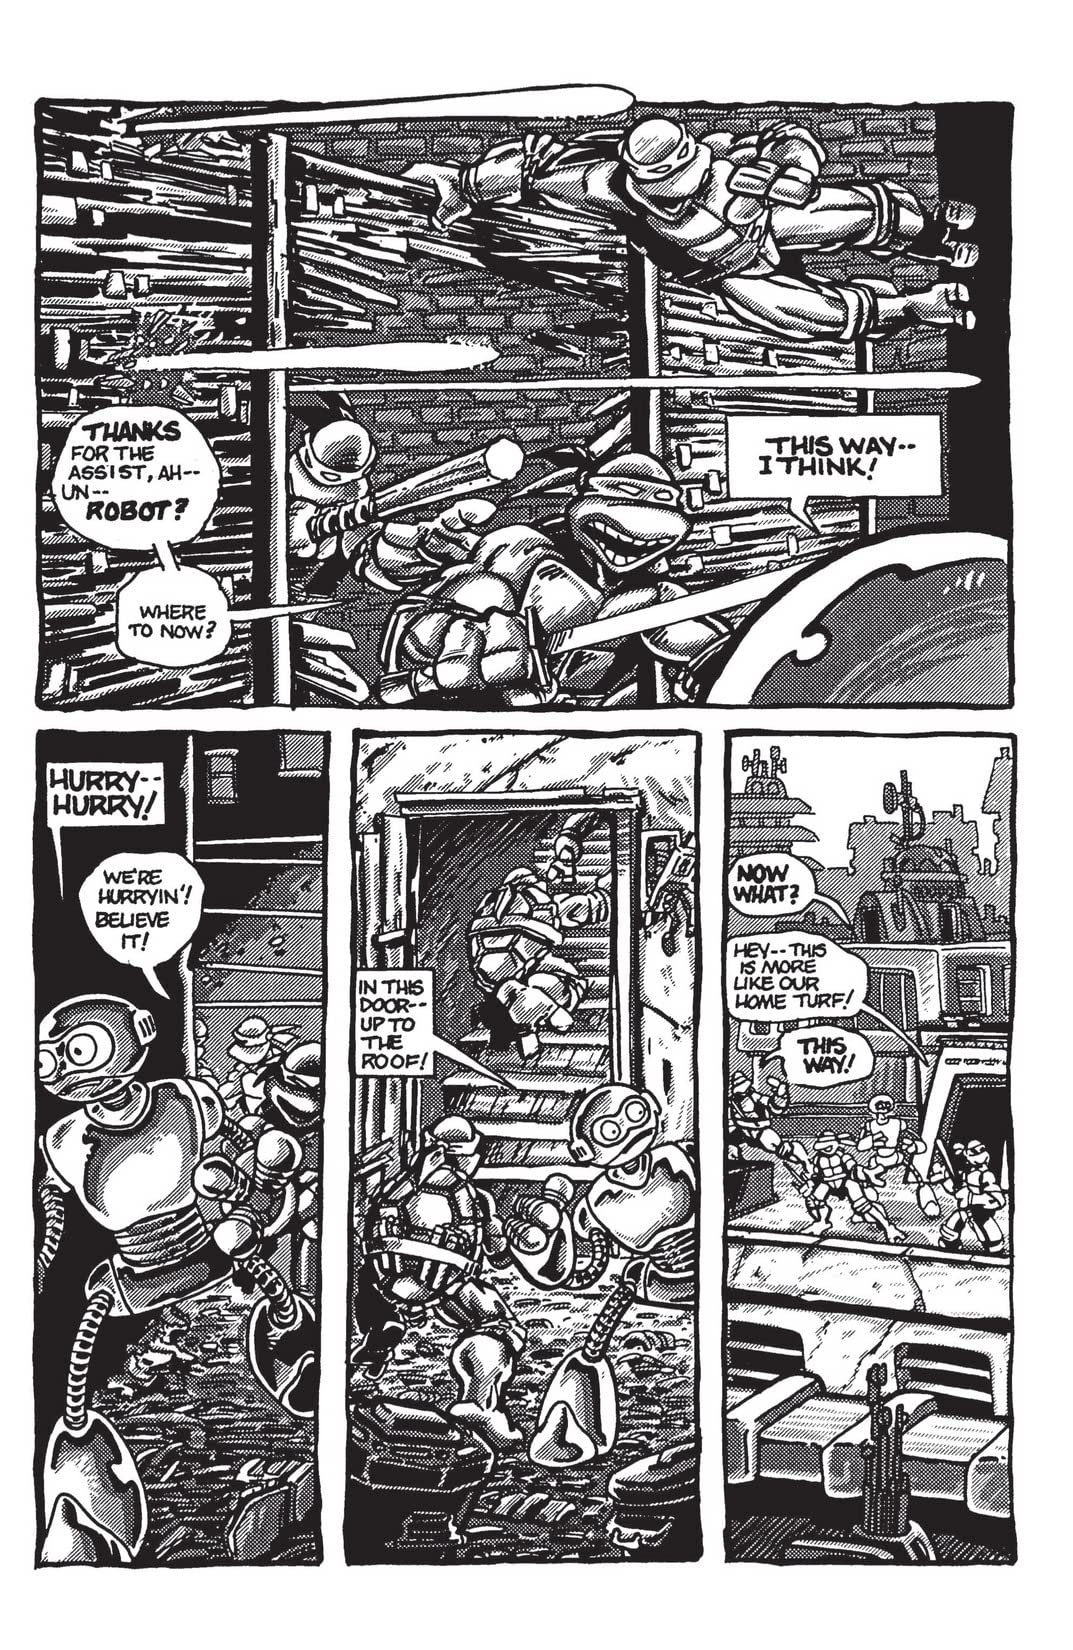 Teenage Mutant Ninja Turtles: Black & White Classics #5